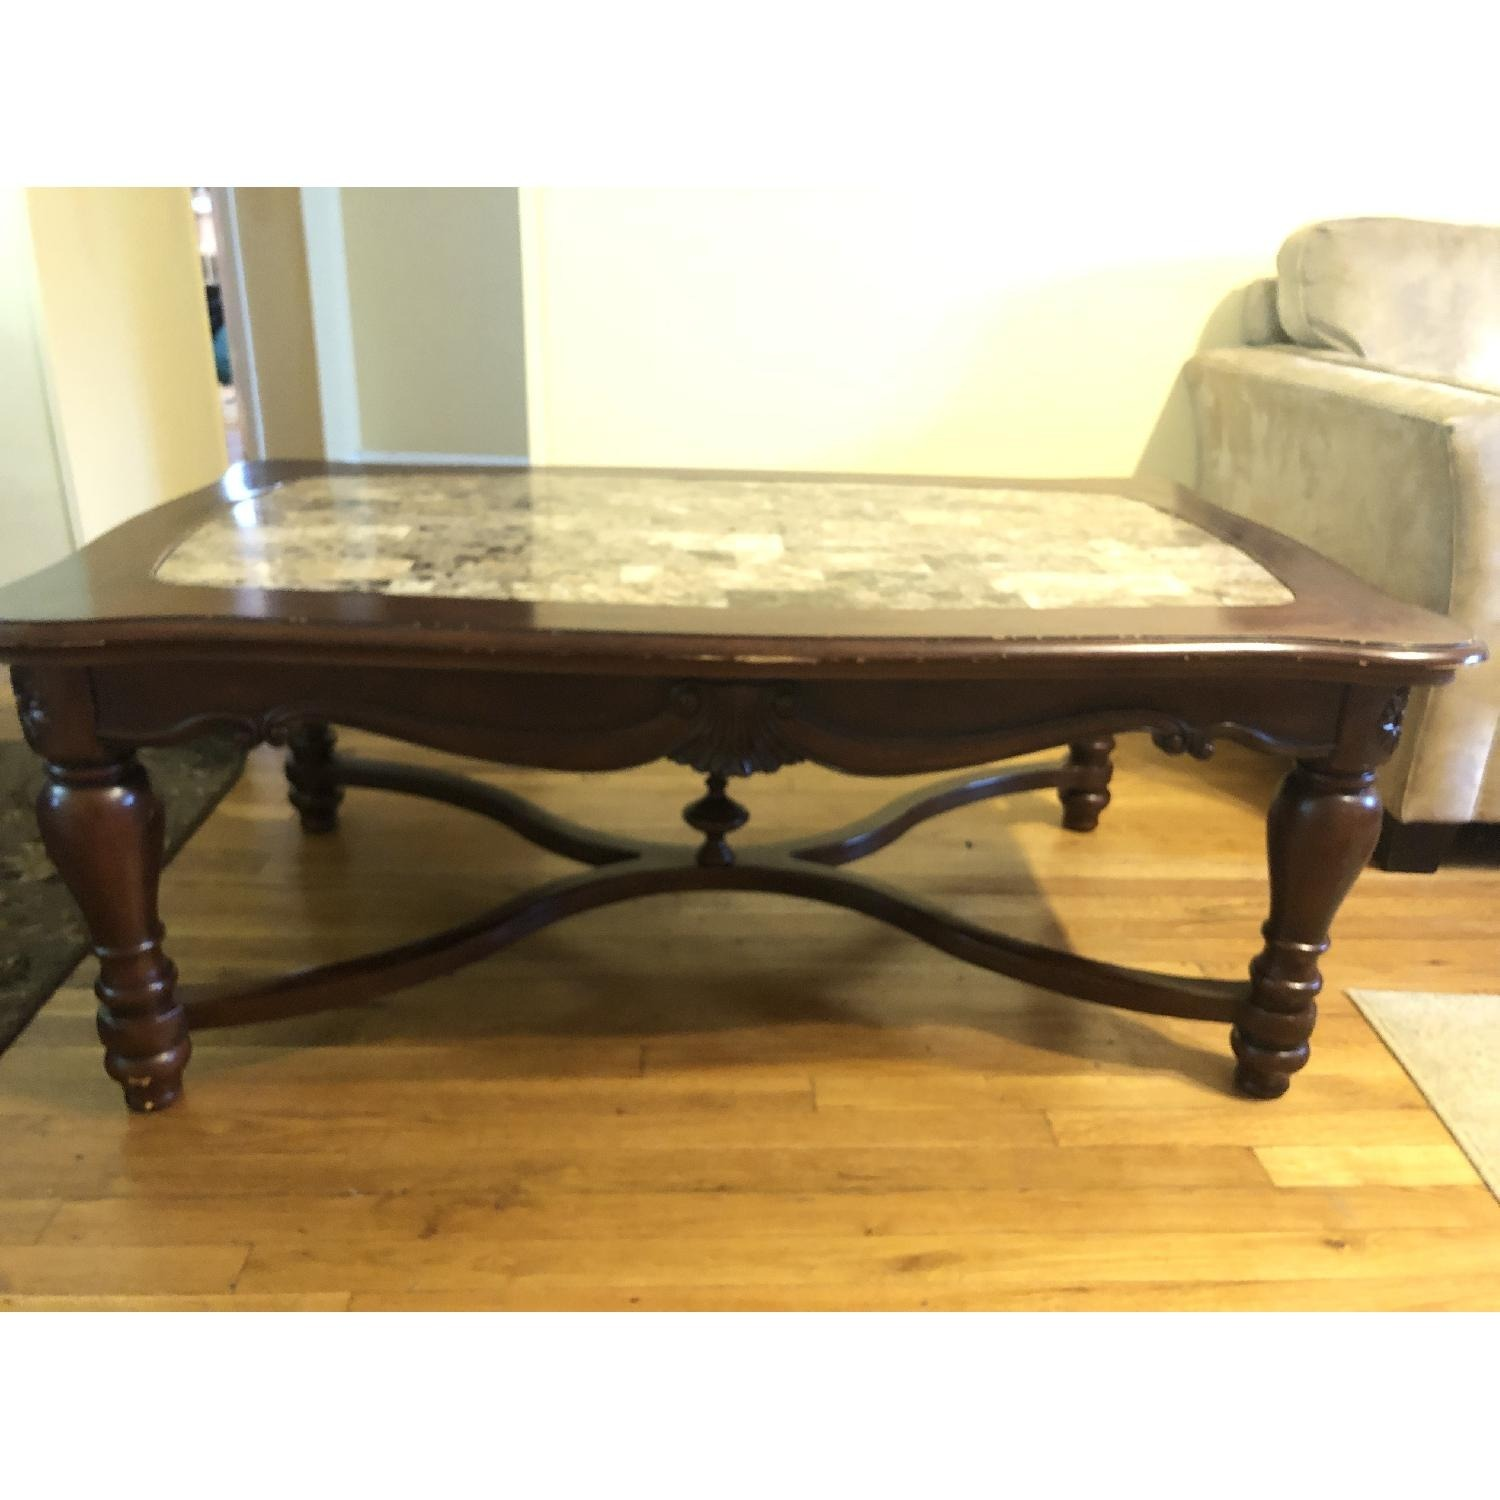 Ashley Wood & Marble Coffee Table + 1 End Table - image-2